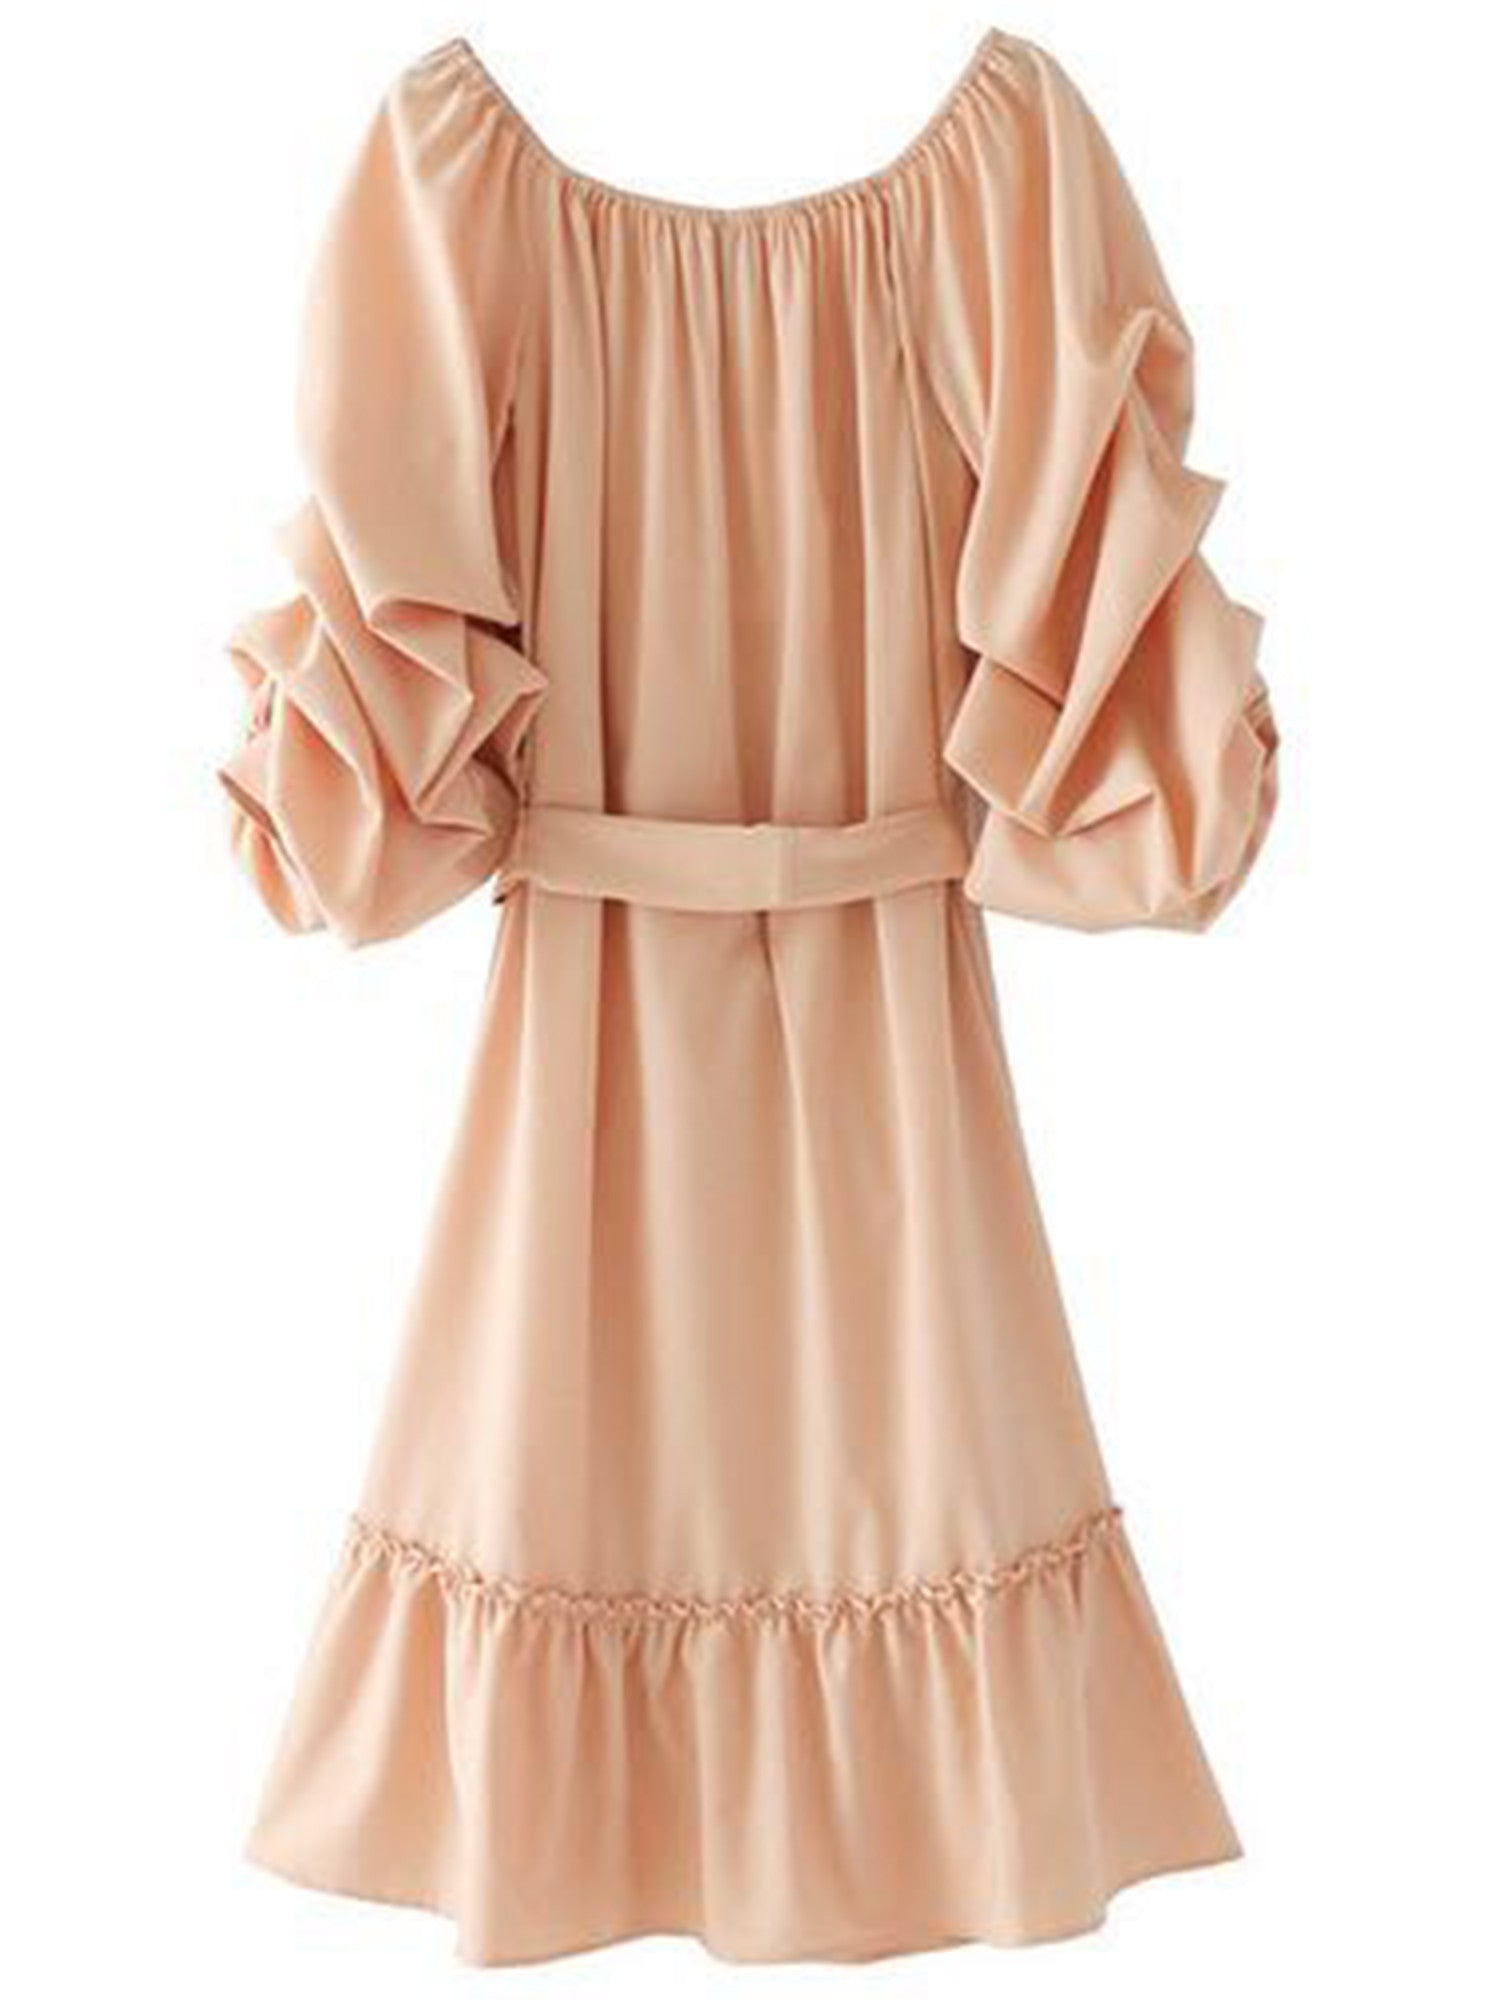 'Katarina' Ruffle Sleeve Peplum Dress